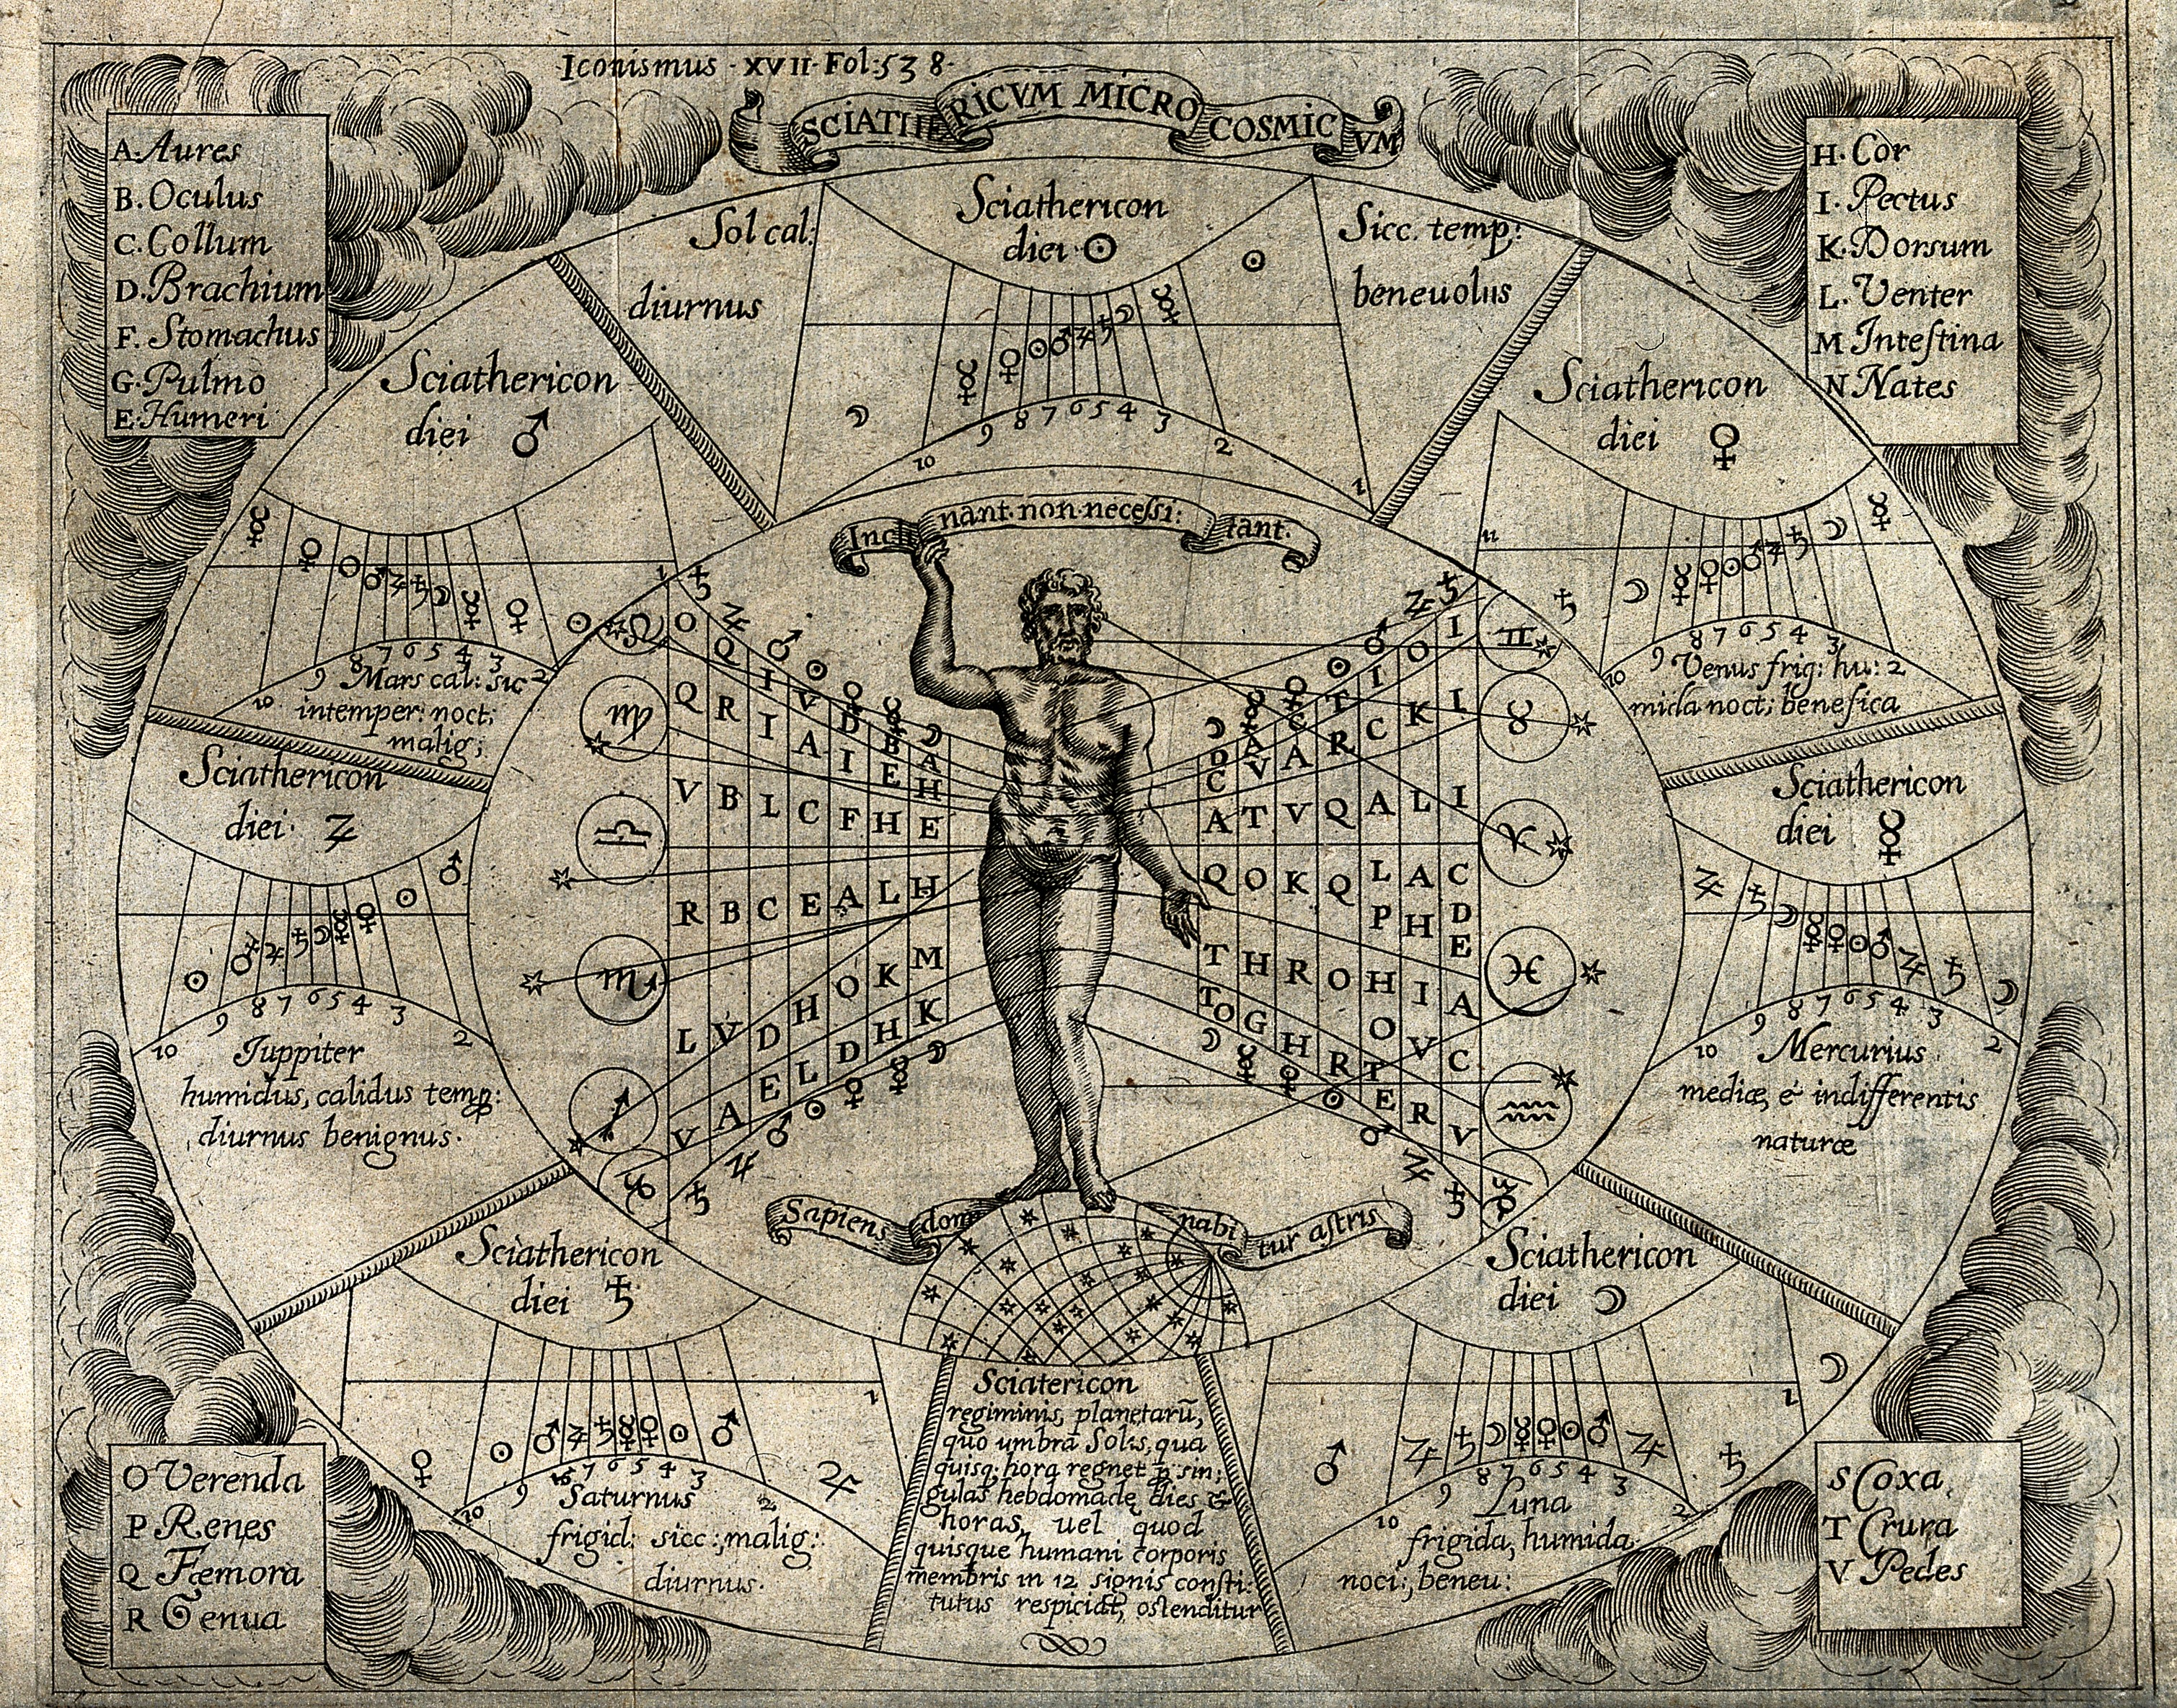 Read My Astrological Chart: Astronomy; a chart for devising a horoscope. Engraving by P ,Chart